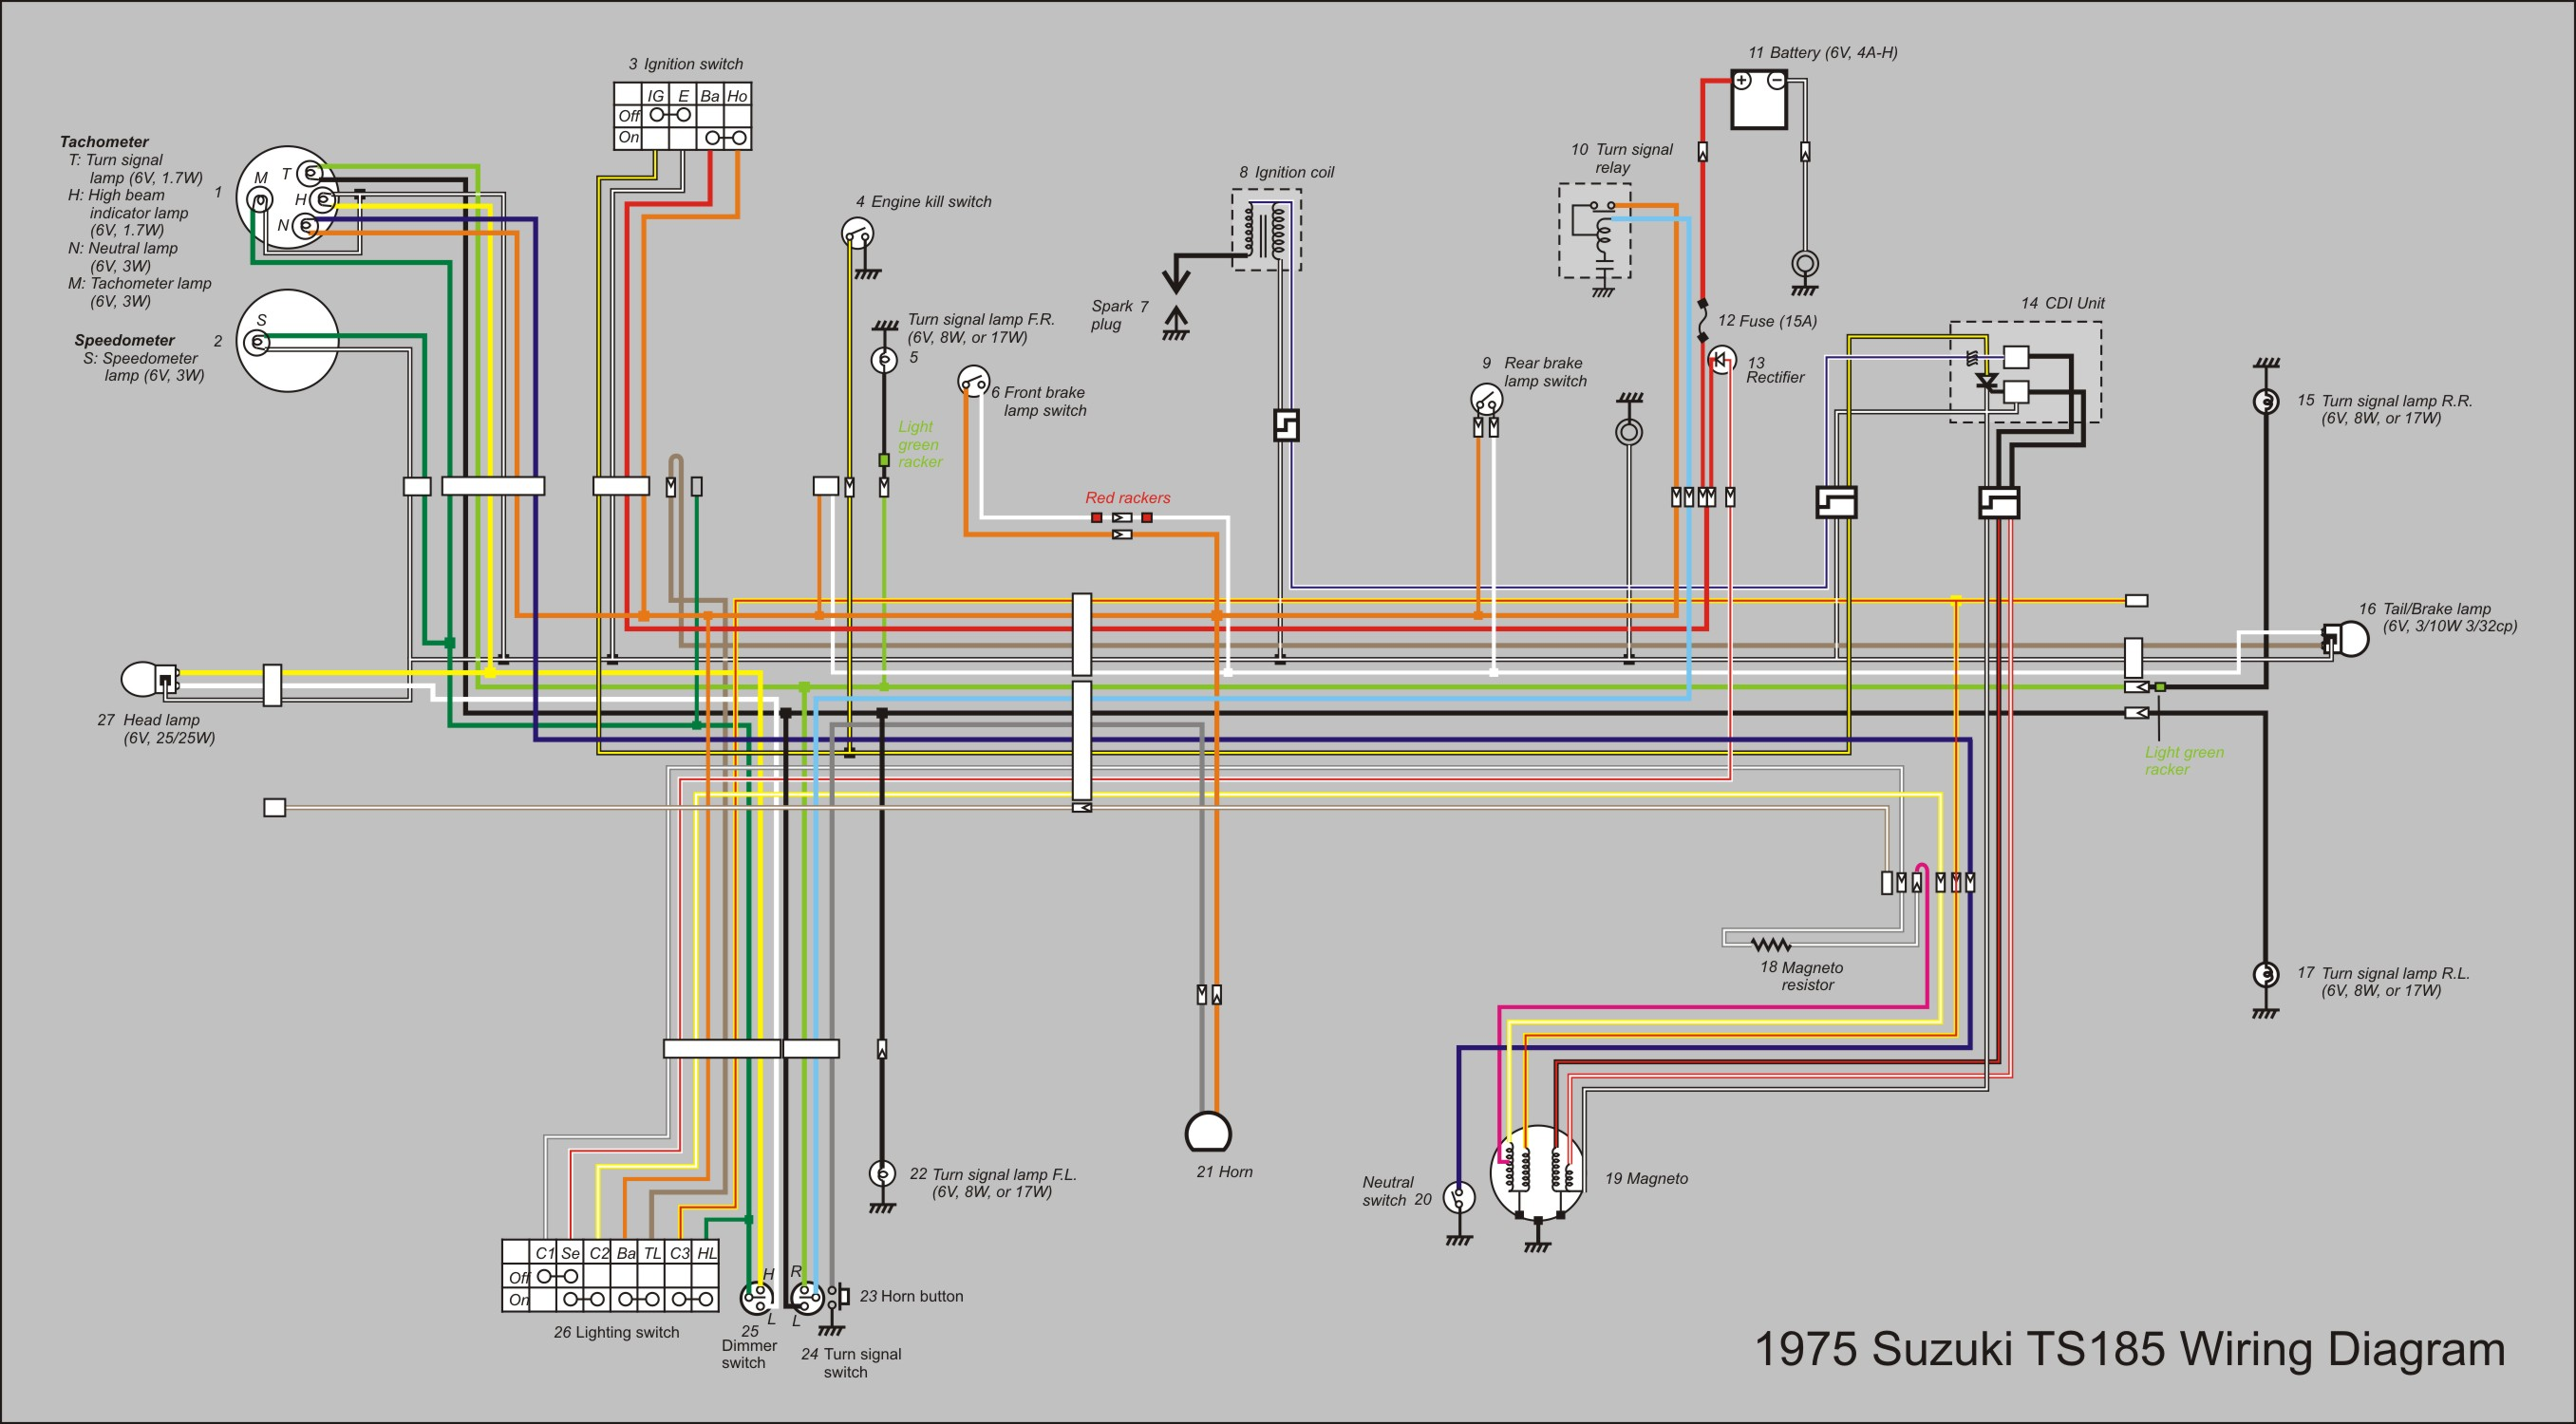 TS185_Wiring_Diagram_new file ts185 wiring diagram new jpg wikimedia commons find wiring diagram for 87 ford f 150 at metegol.co